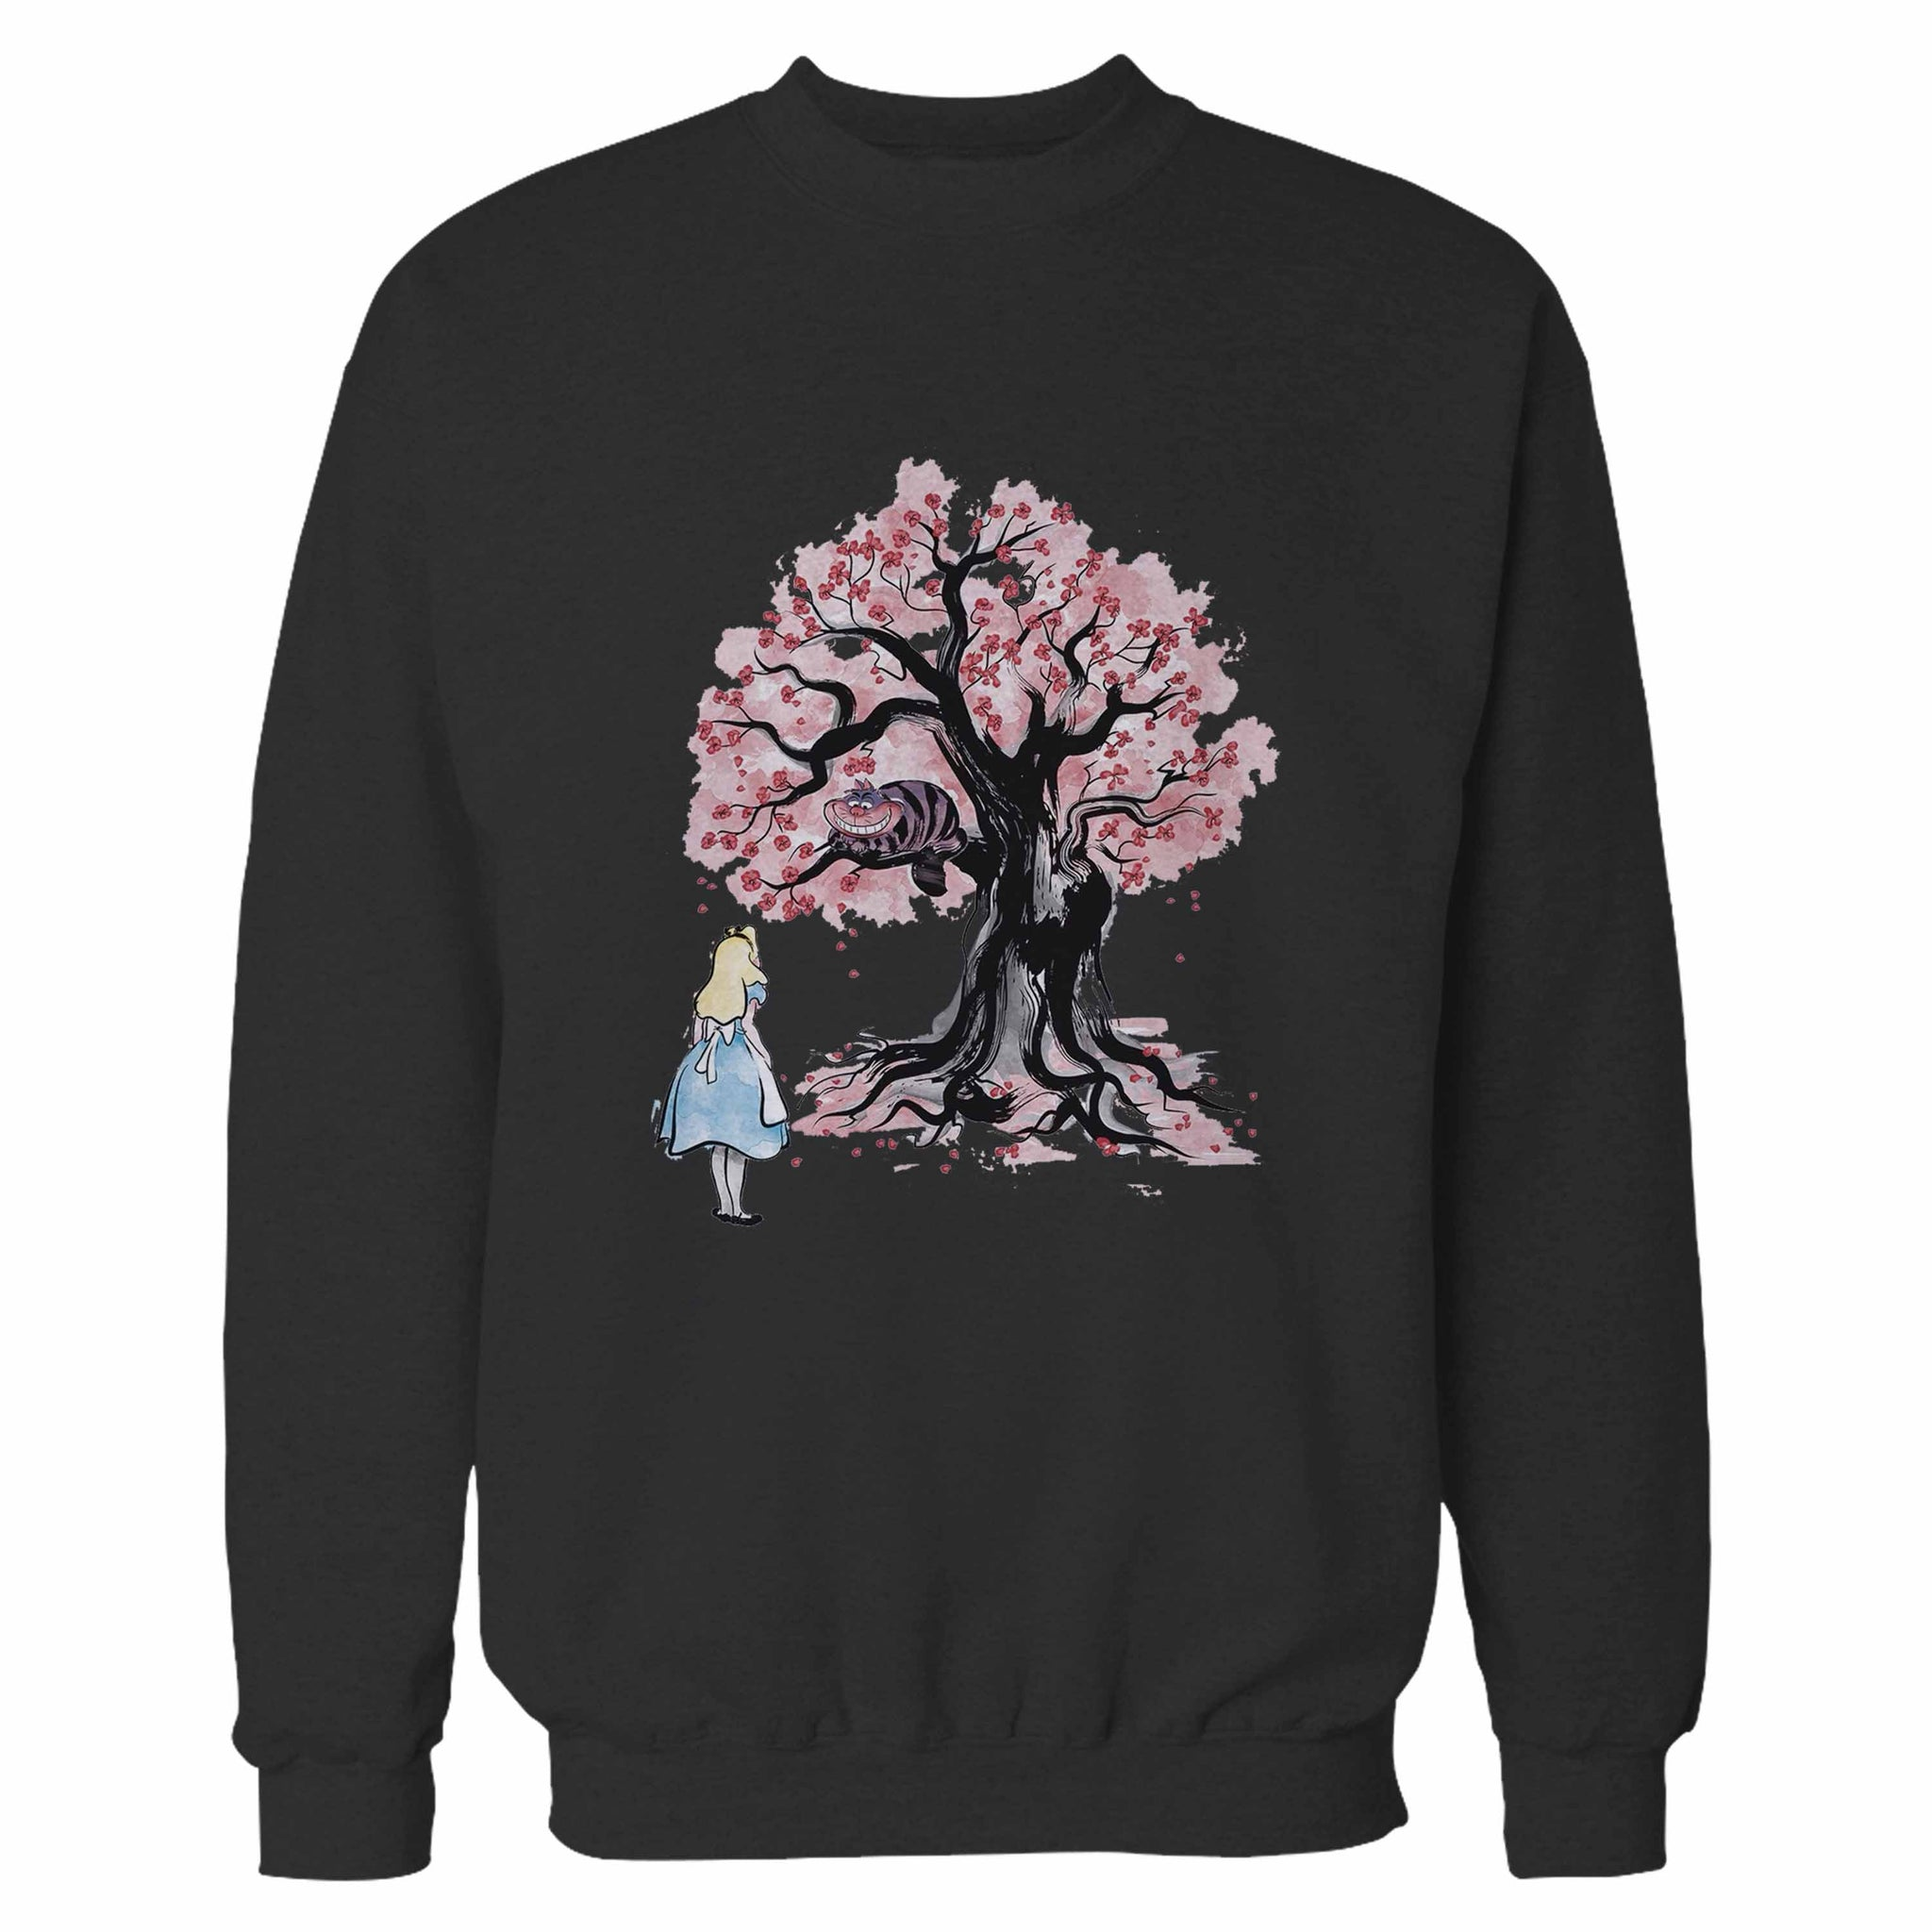 The Chesire's Tree Sweatshirt